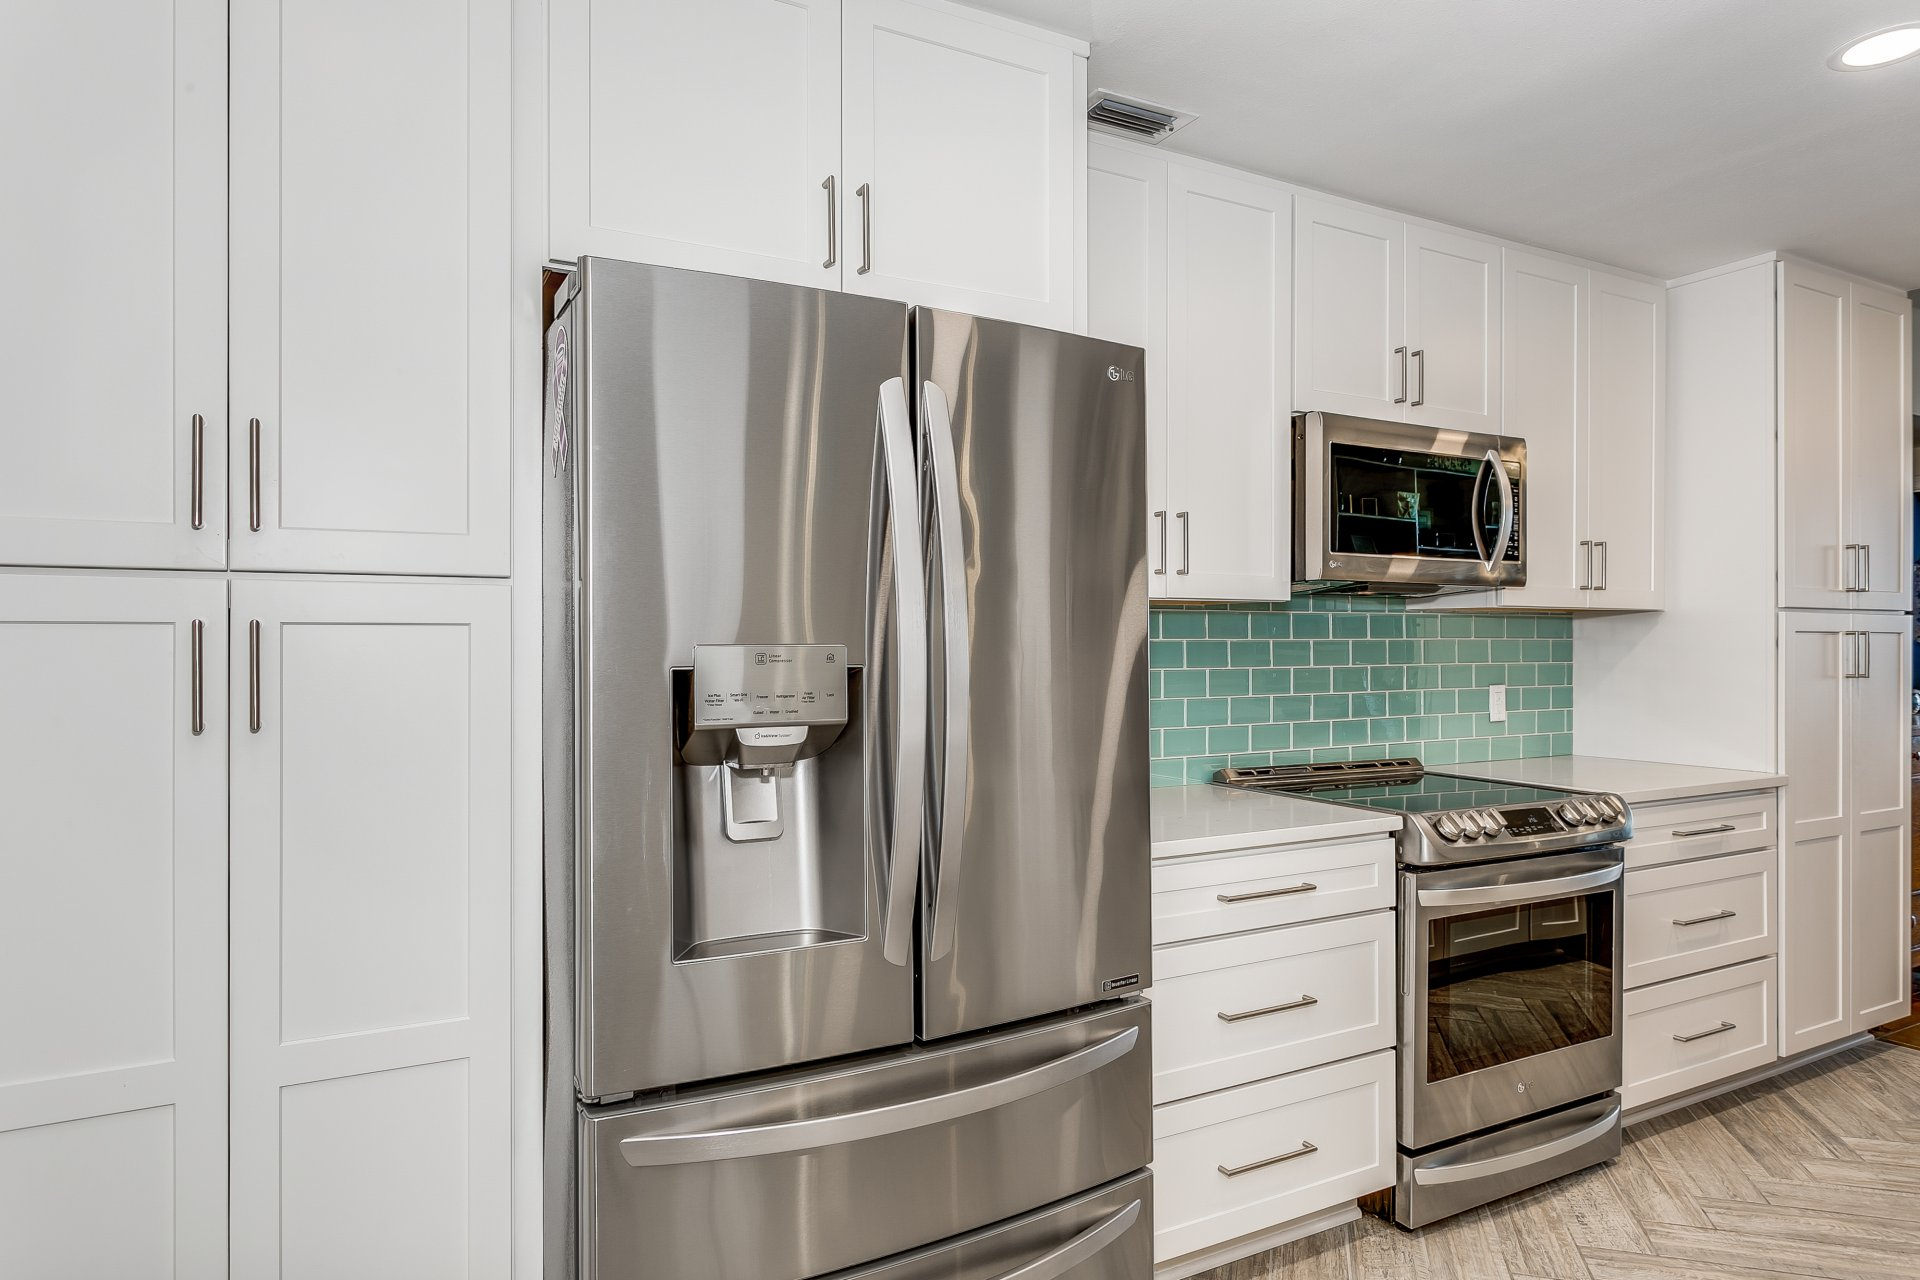 Stainless steel appliances and brushed satin nickel door and drawer pulls